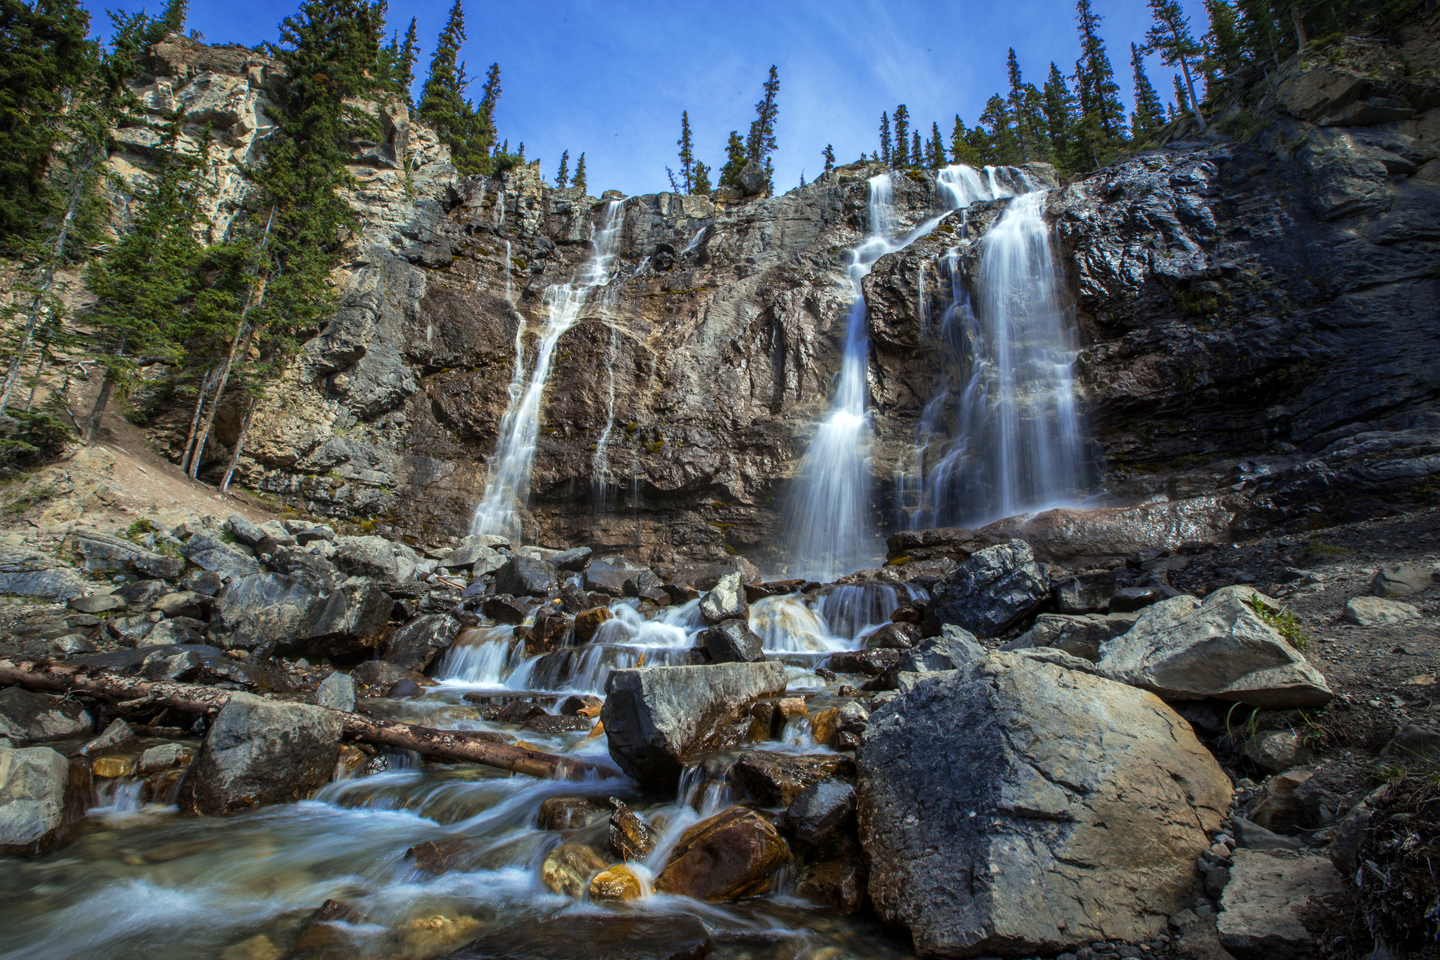 tangle-falls-icefields-parkway-upper-falls